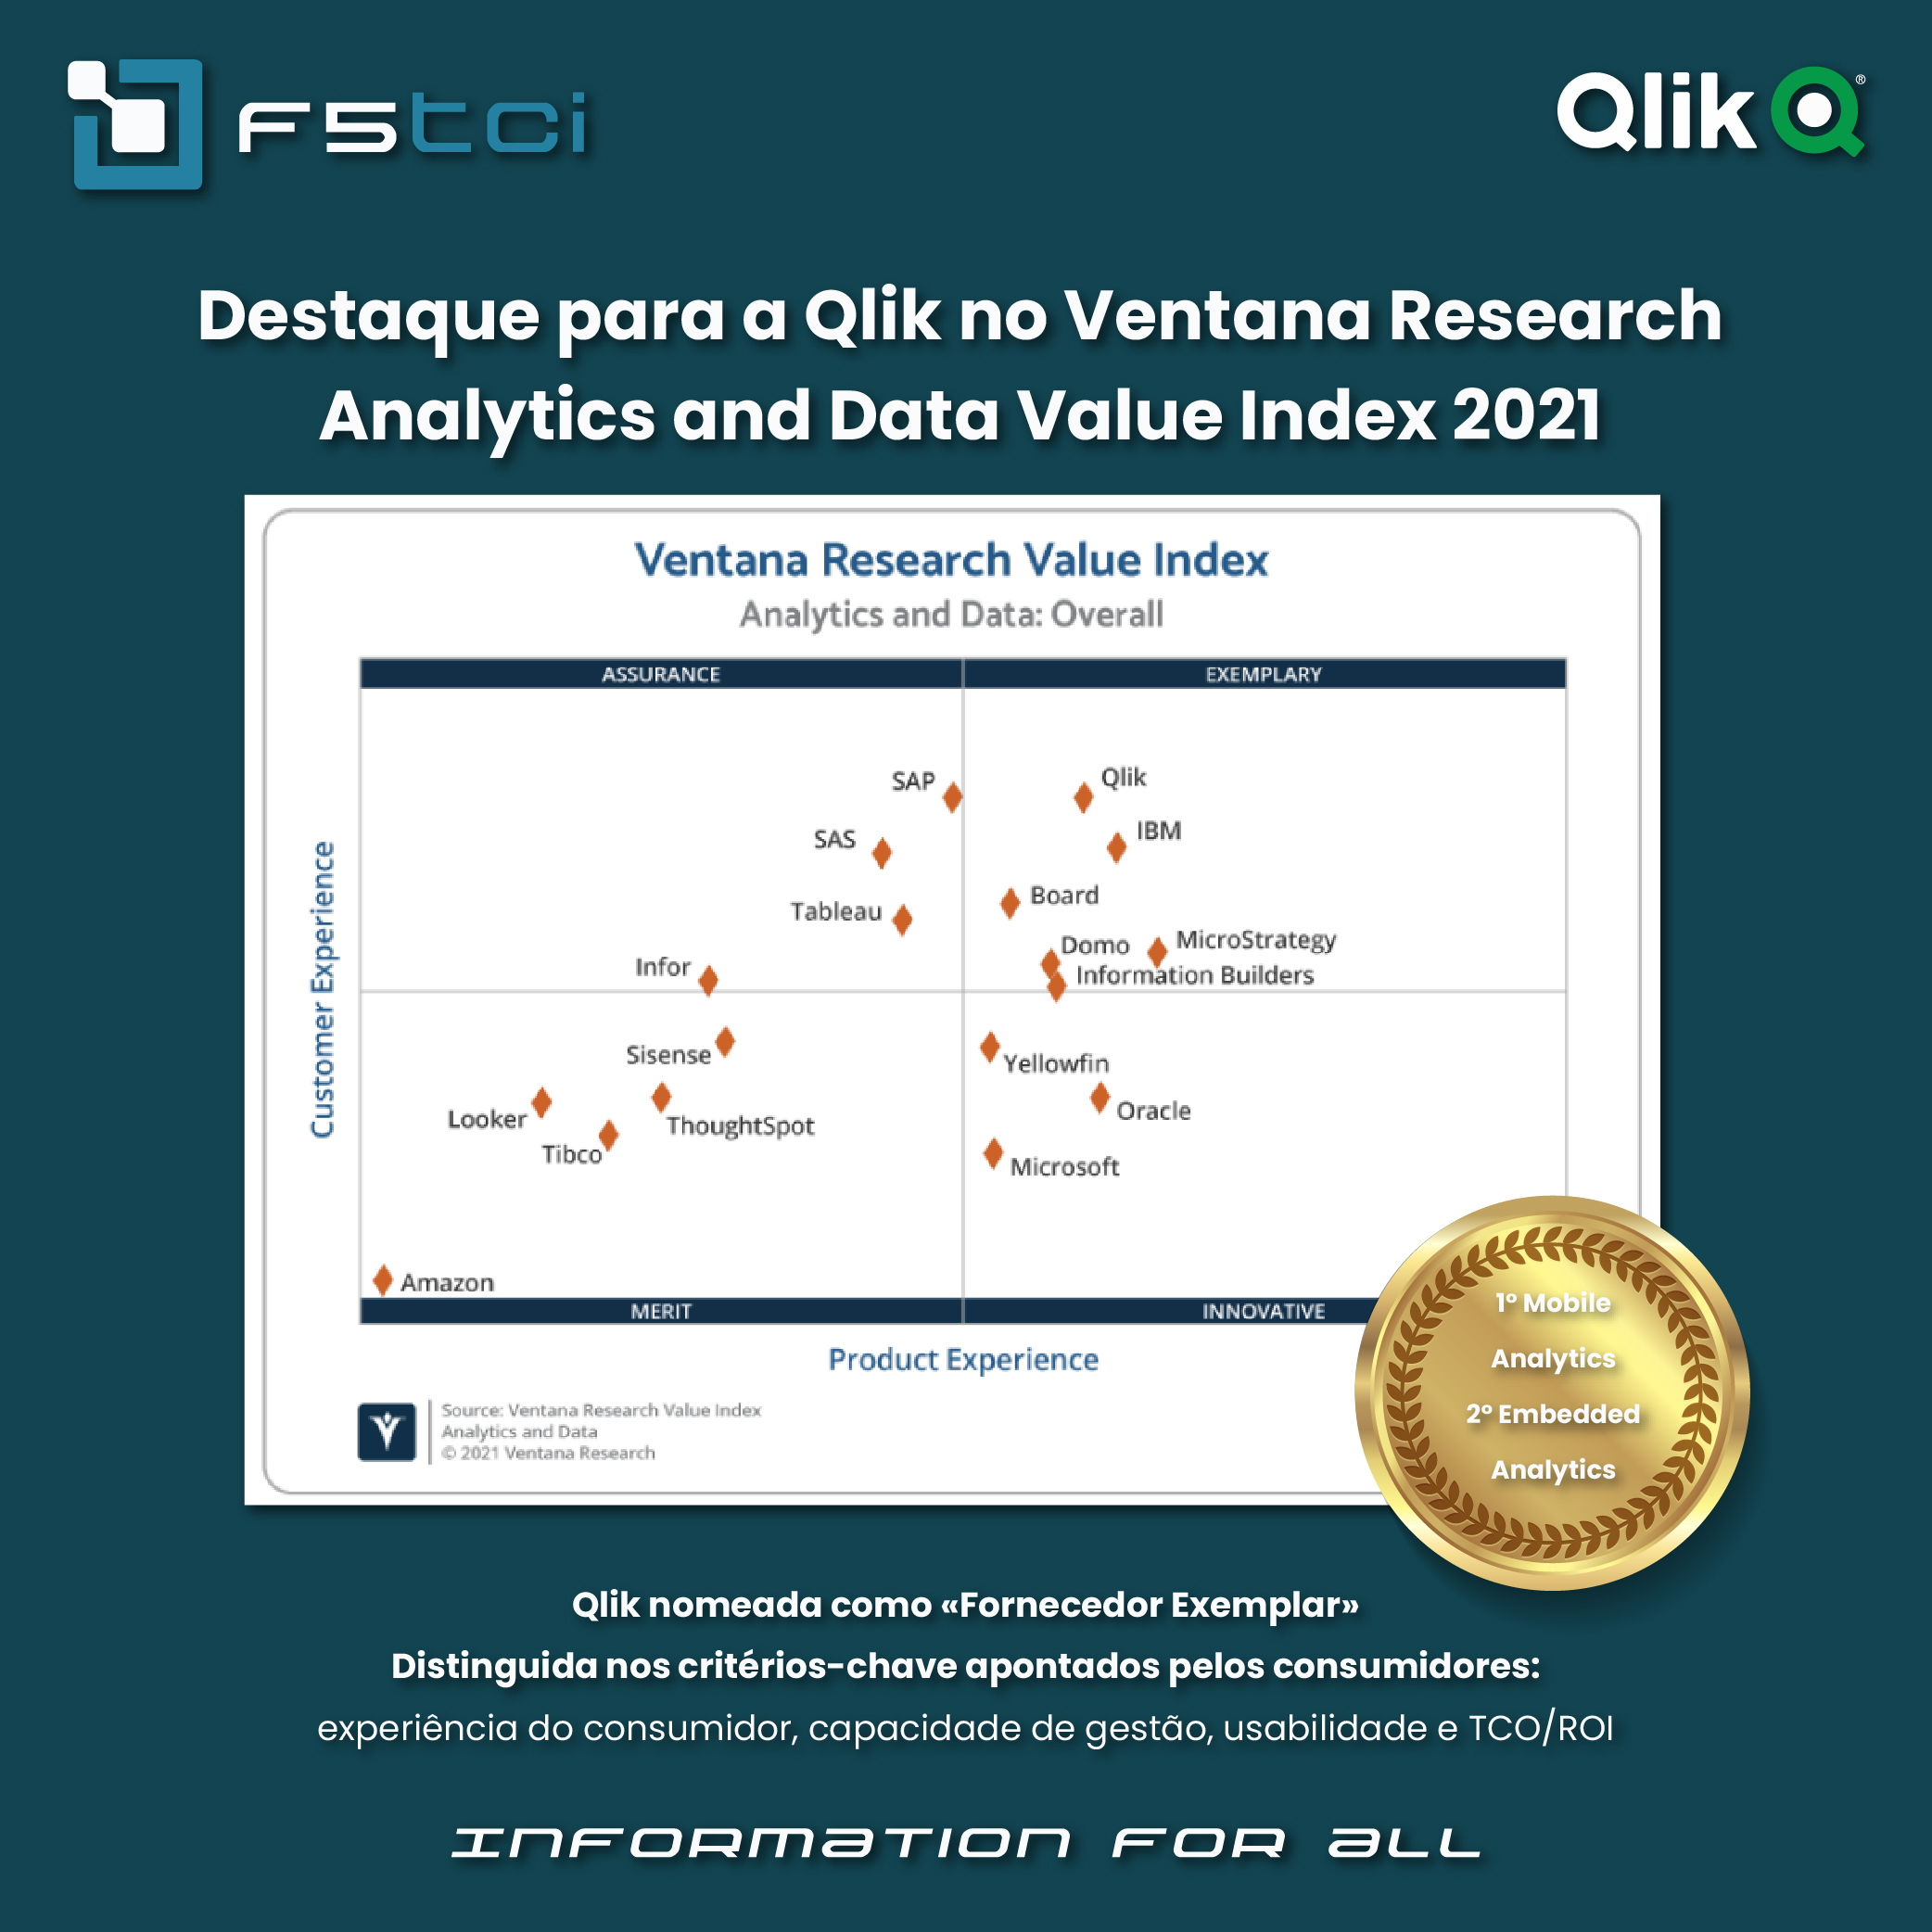 Qlik-in-the-Ventana-Research-2021-Analytics-and-Data-Value-Index